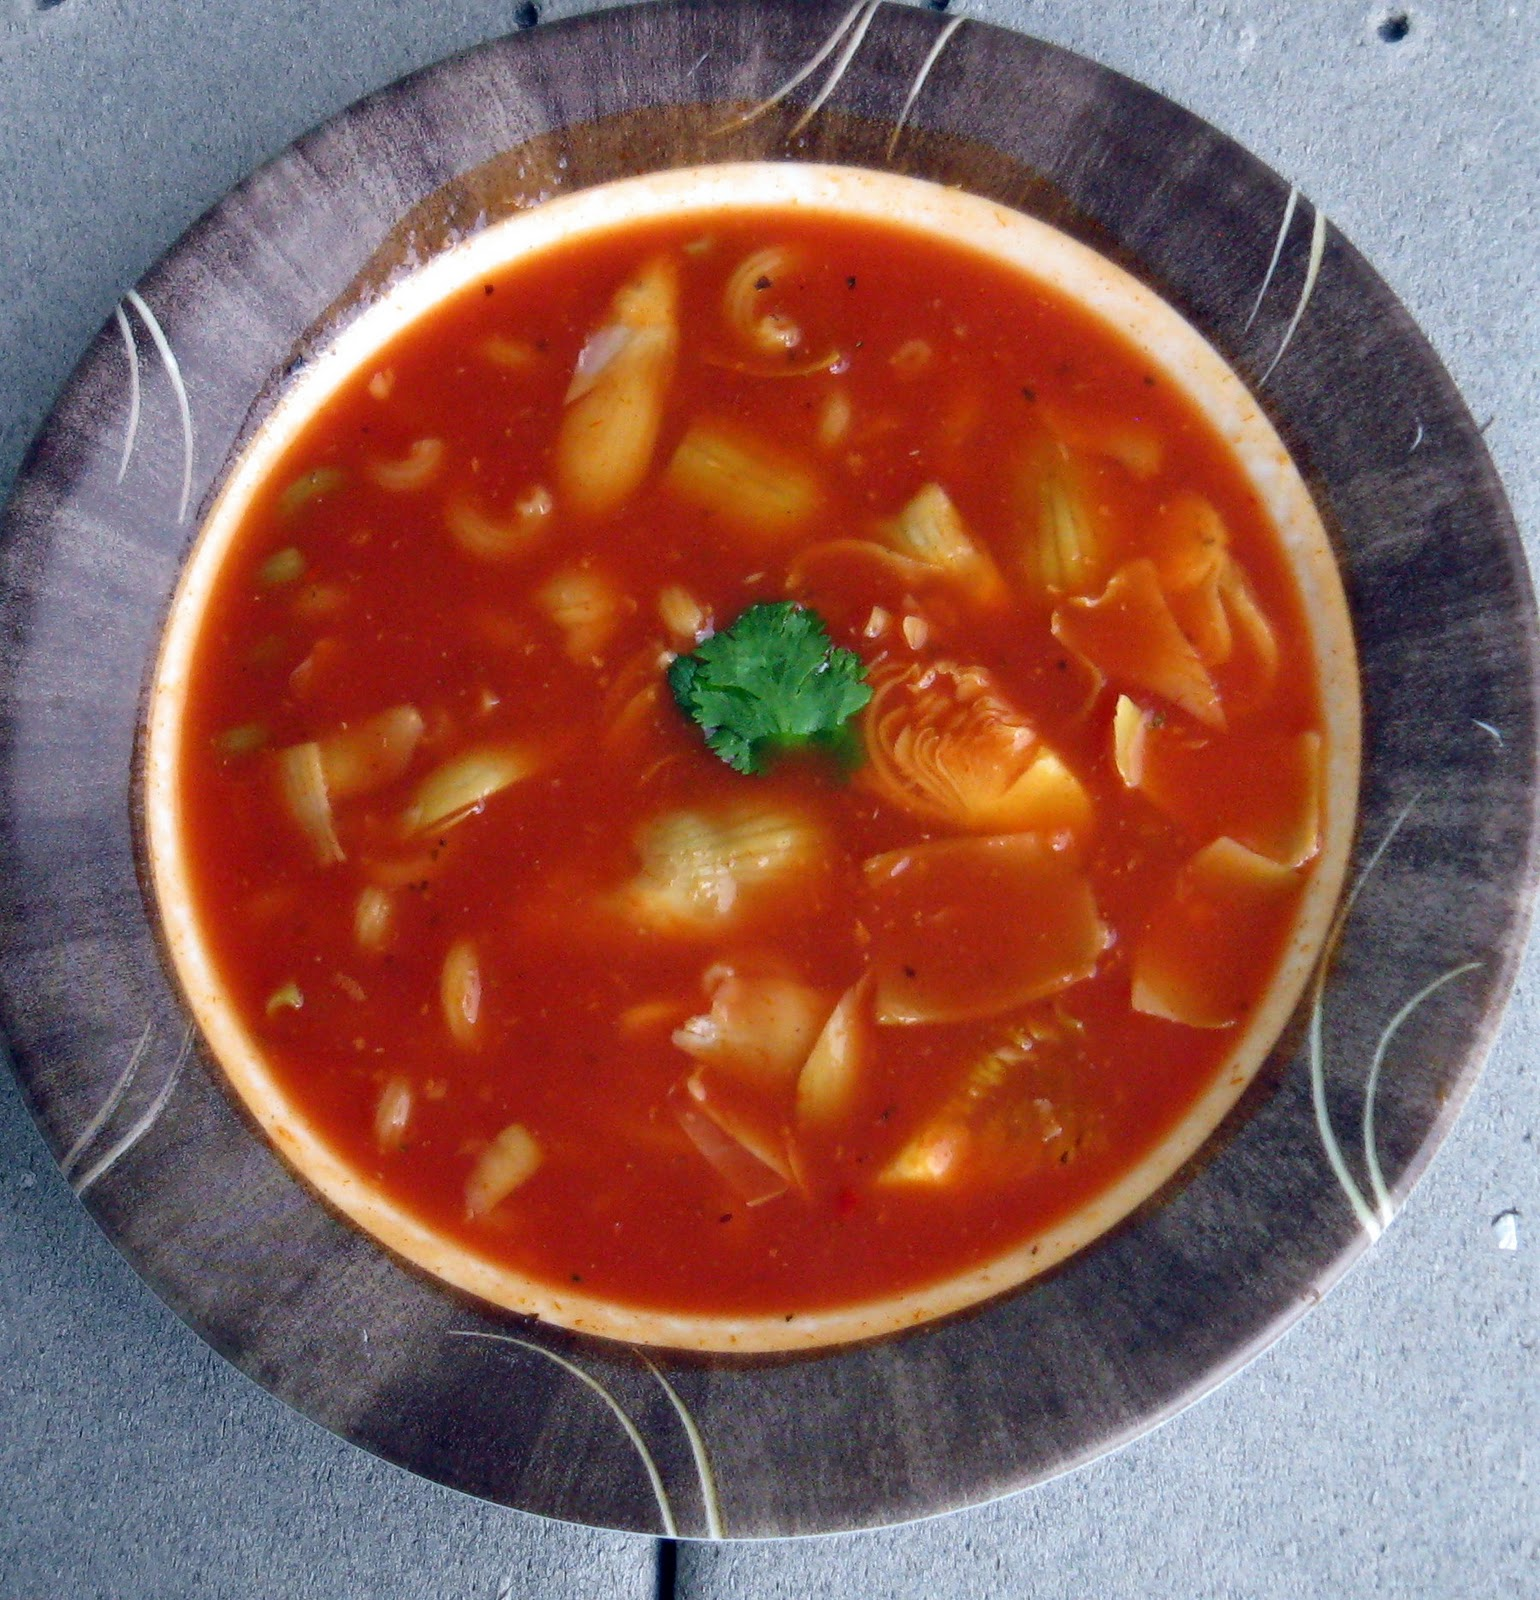 Happy Insides: Our Soup (Spicy Tomato Soup)